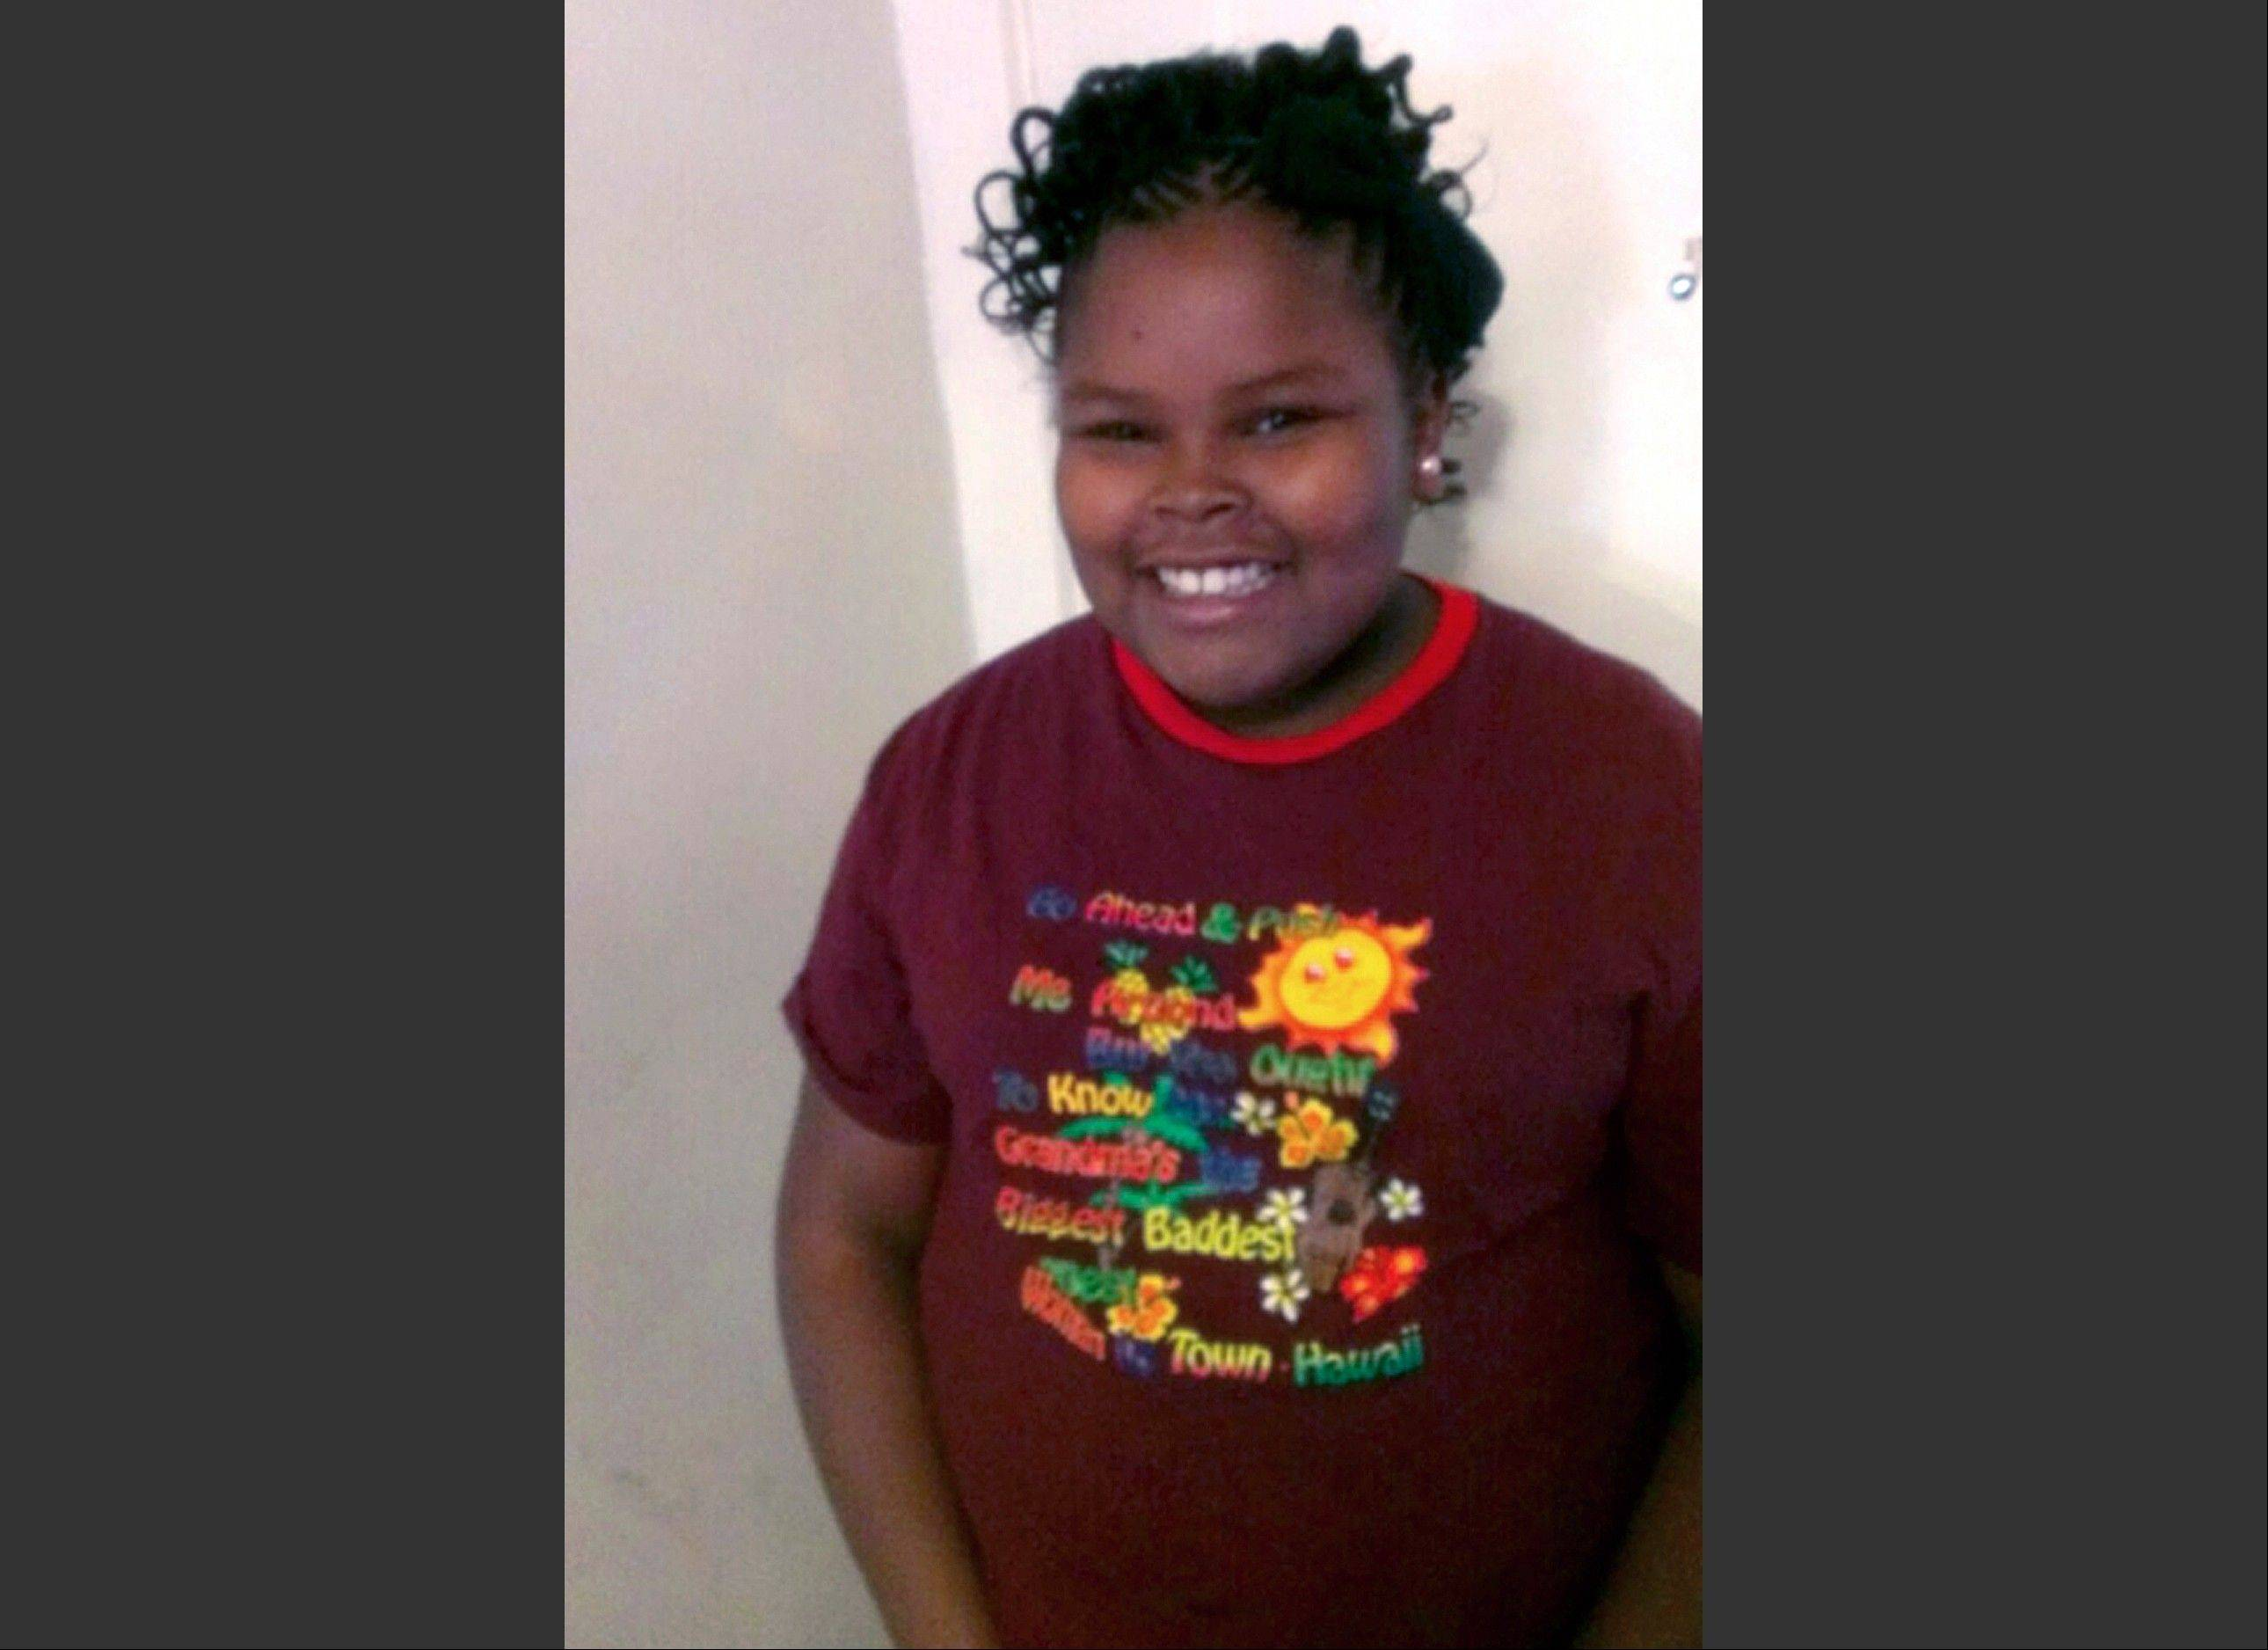 The 13-year-old California girl declared brain dead after a tonsillectomy has been taken out of Children�s Hospital of Oakland, her family�s attorney said late Sunday. Jahi McMath left the hospital in a private ambulance shortly before 8 p.m. Sunday, Christopher Dolan told The Associated Press.